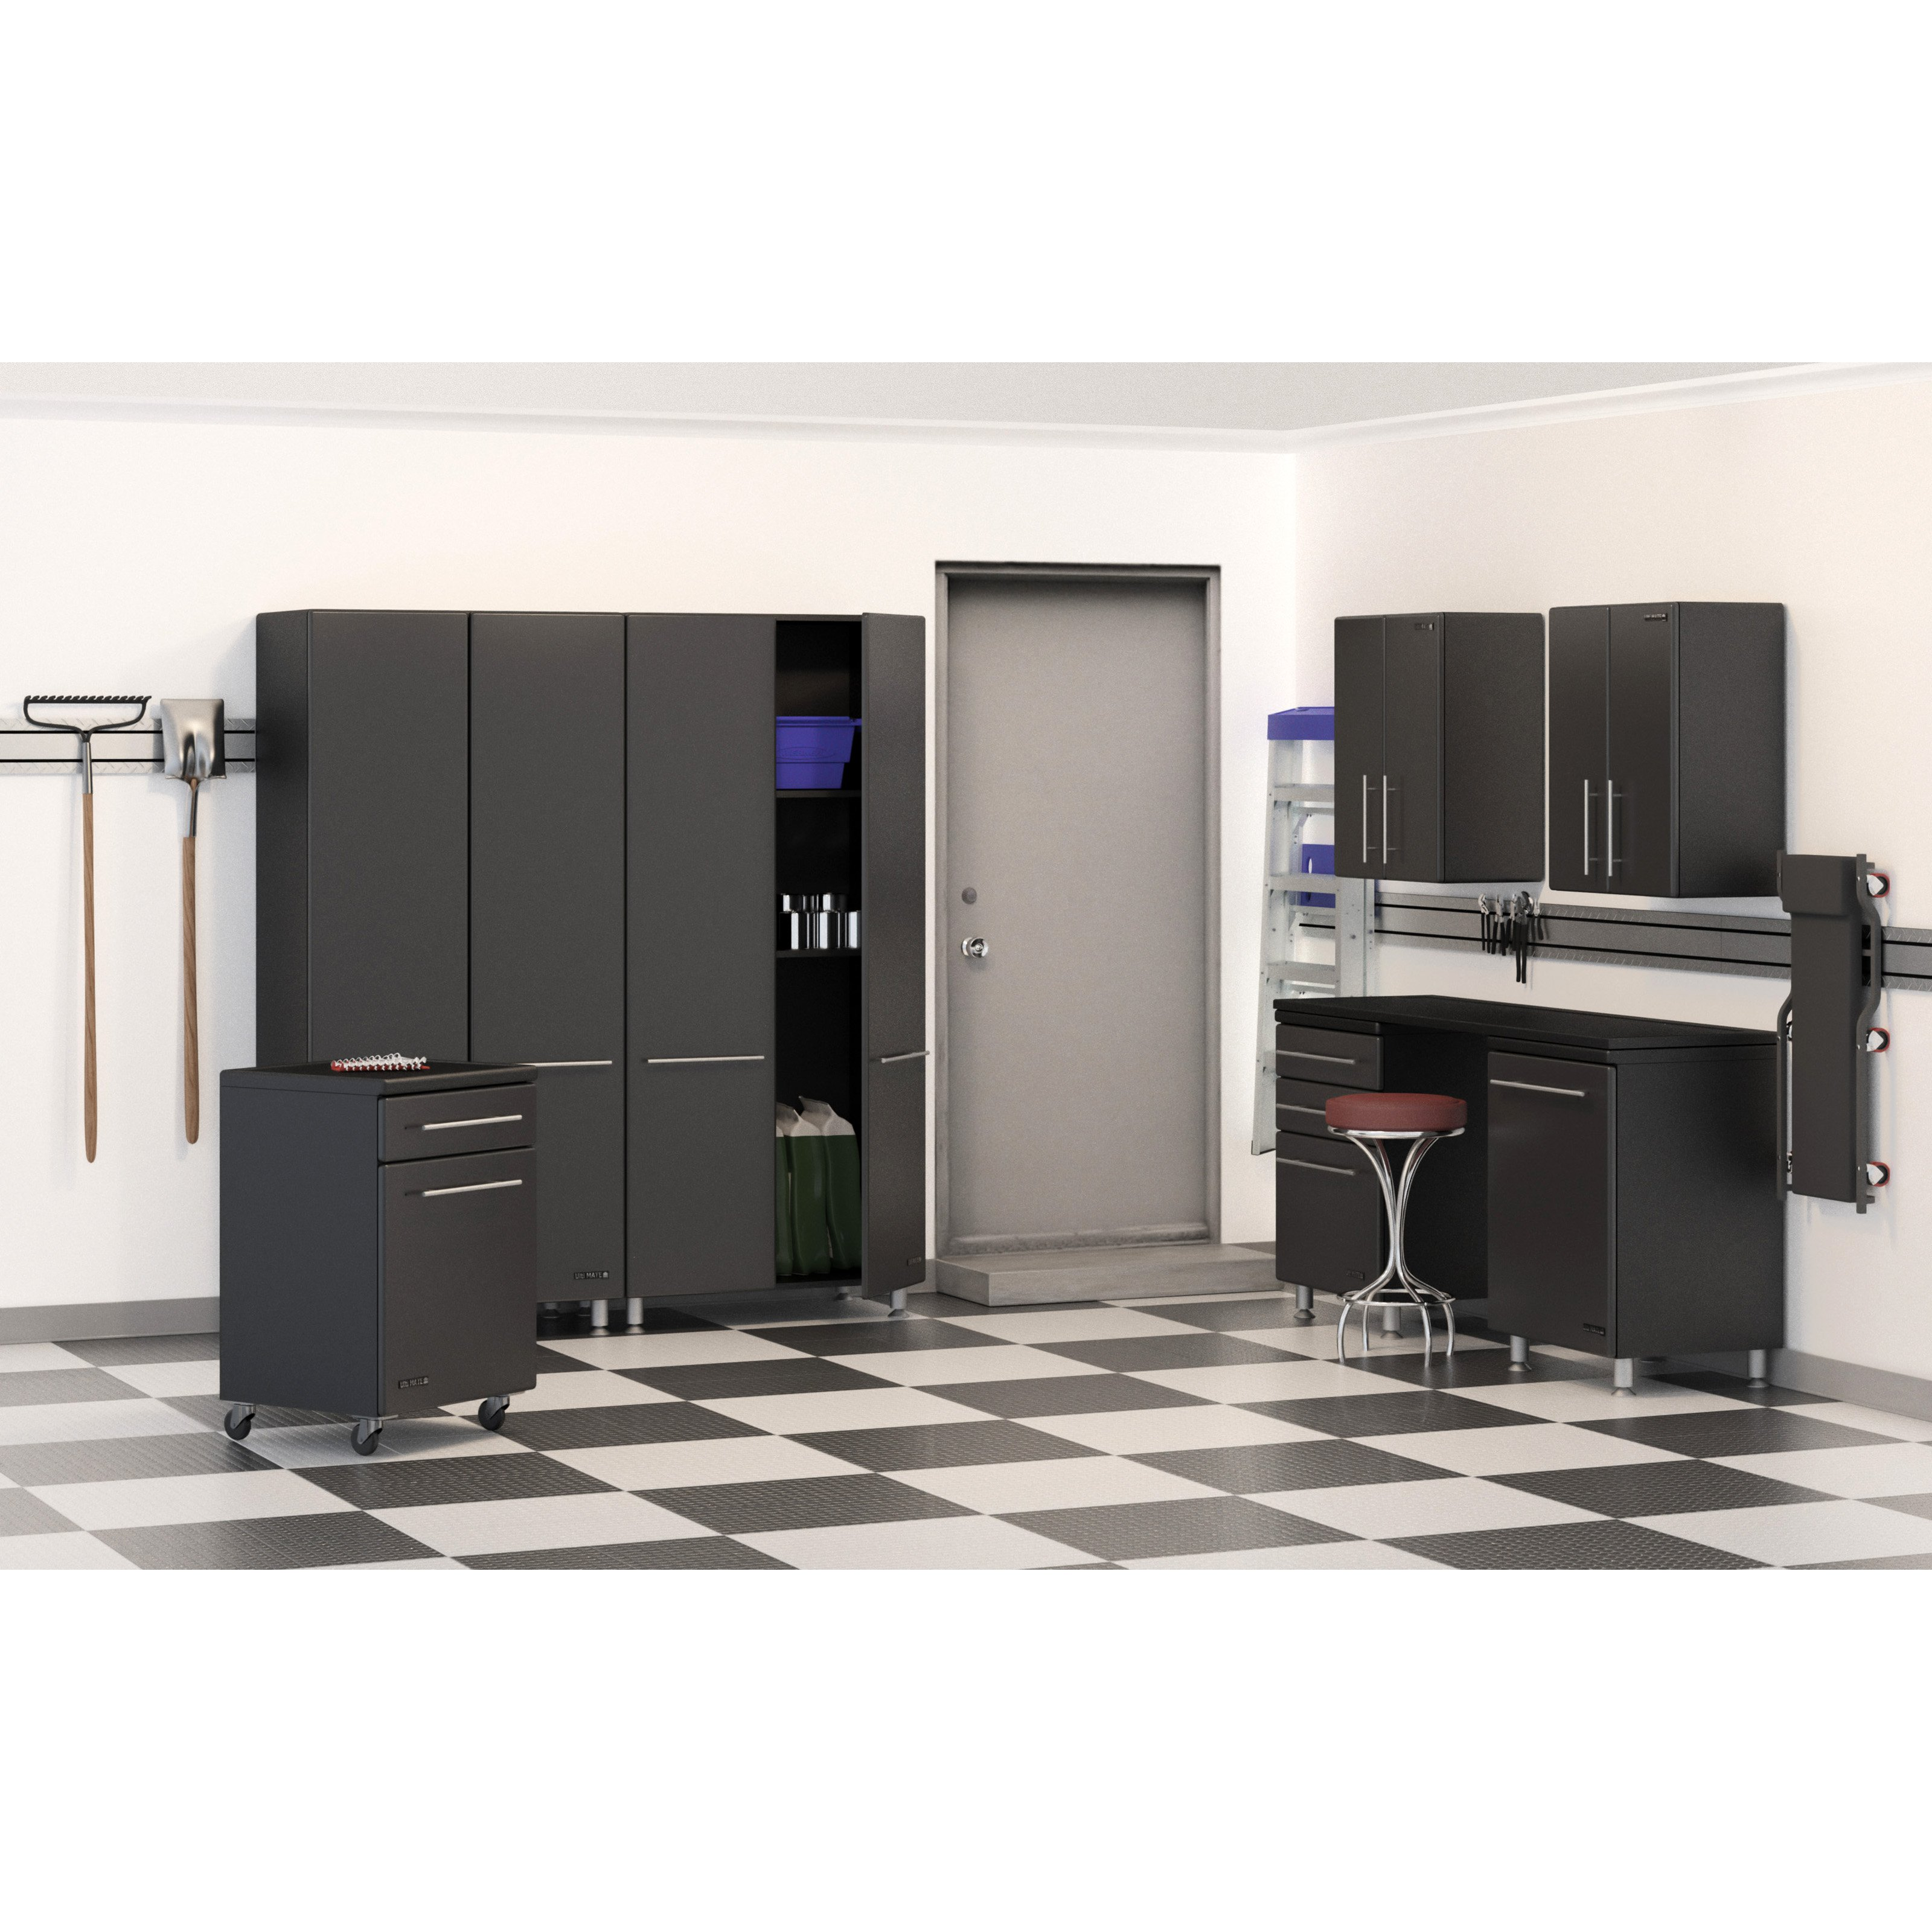 Ulti-MATE 8 pc. Garage Storage System by Ultimate Garage